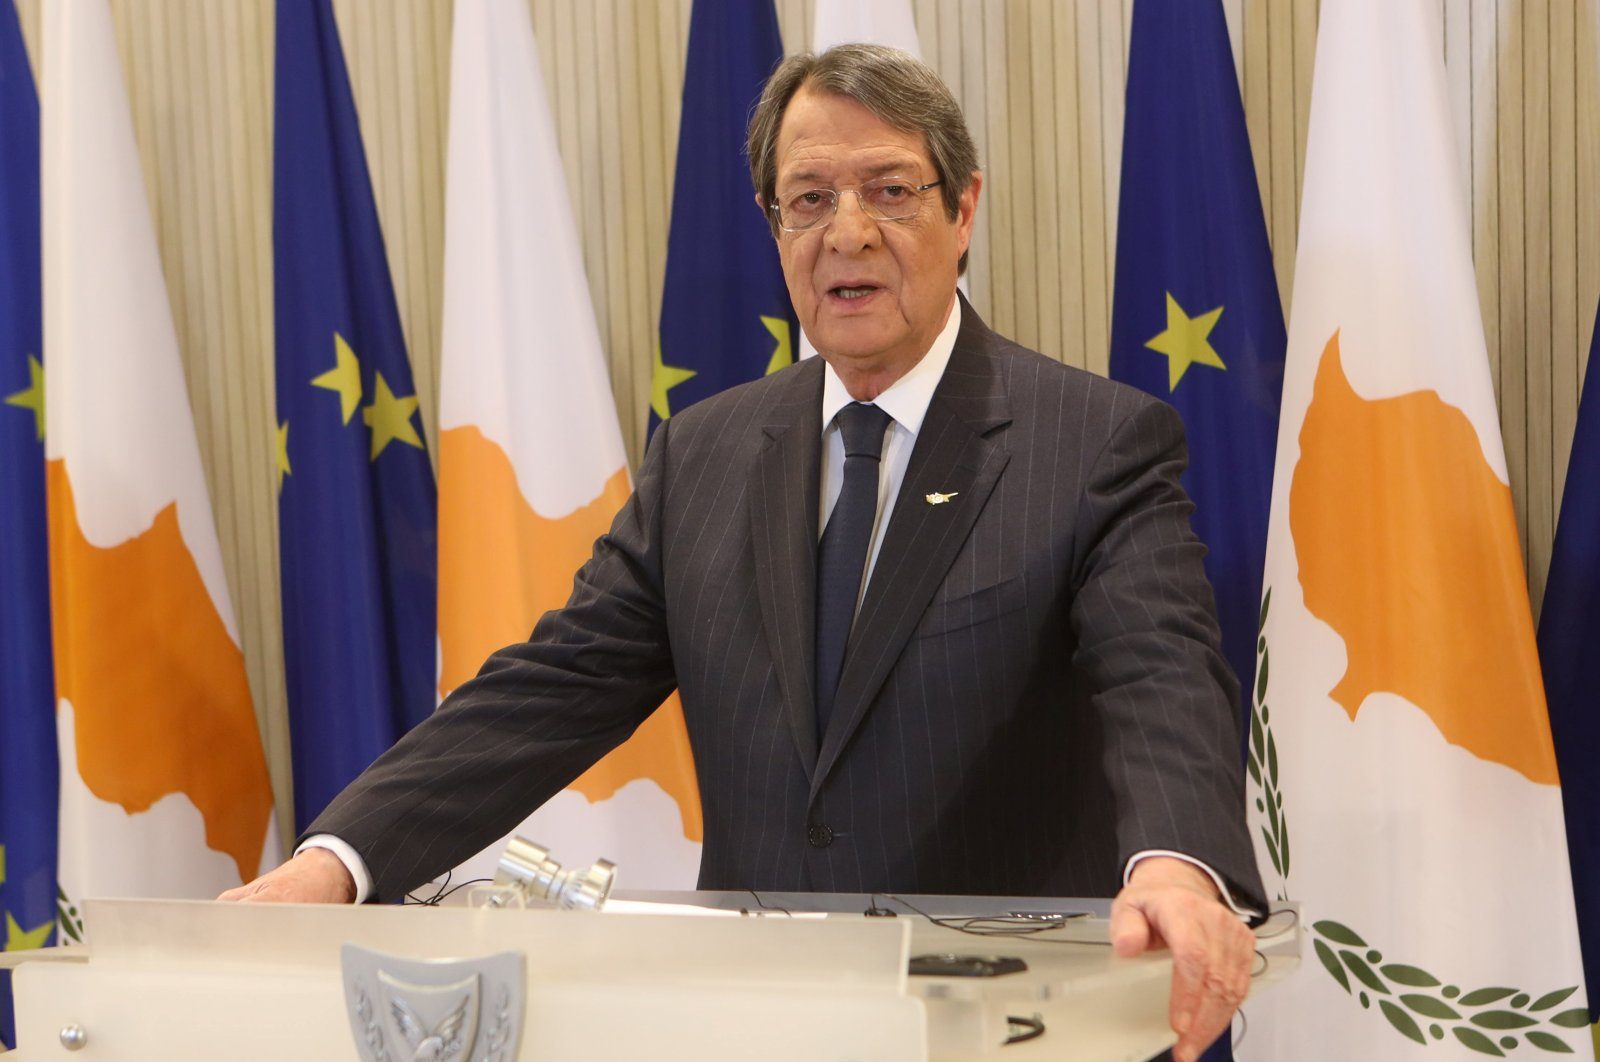 Greek Cypriot President Nicos Anastasiades delivers an address on corruption at the Presidential Palace in Lefkoşa (Nicosia), Cyprus Jan. 28, 2021. (Reuters Photo)